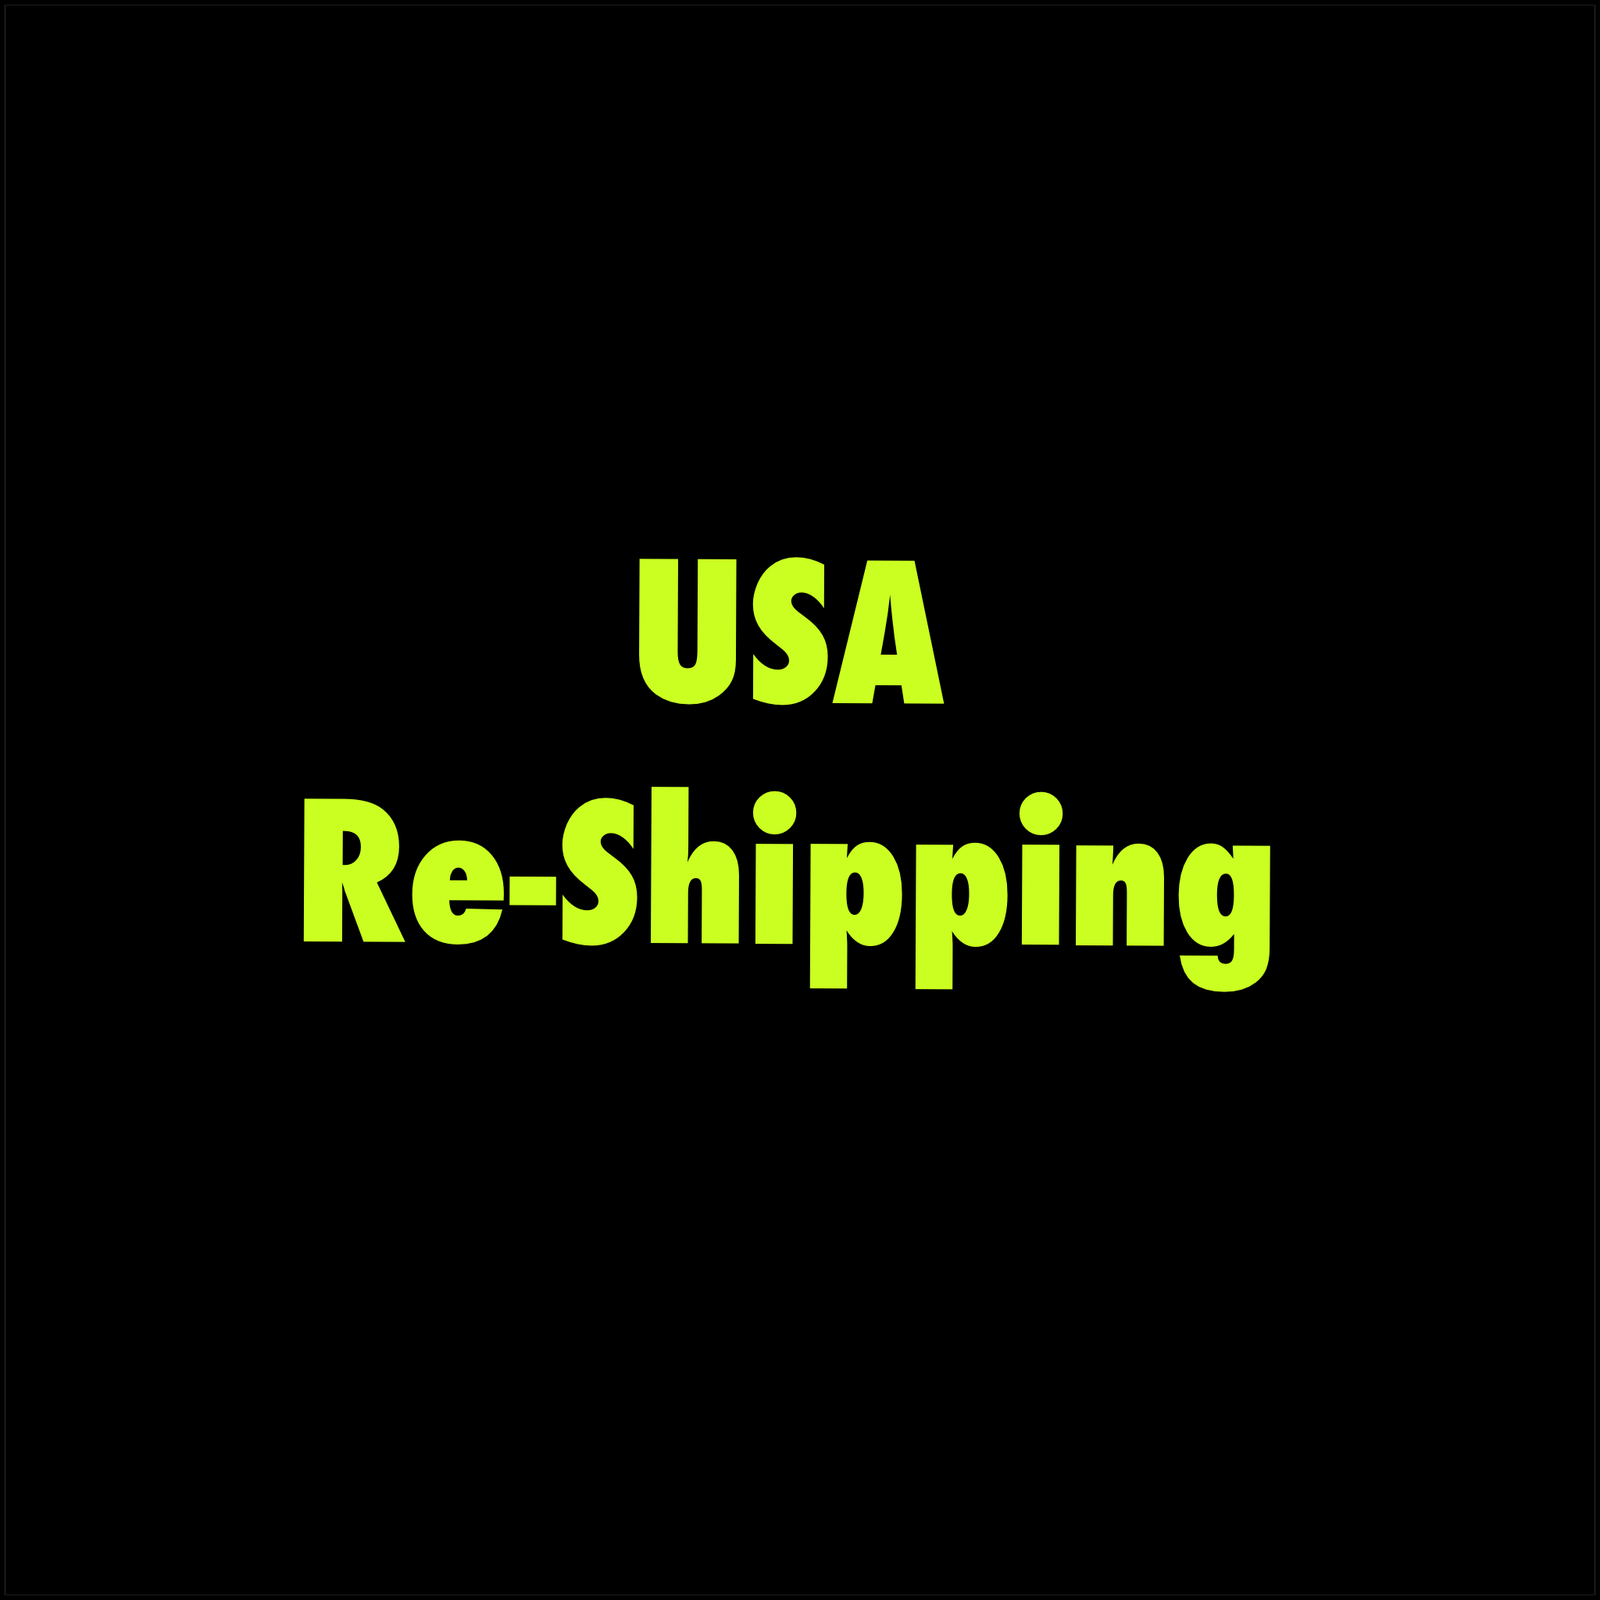 USA Re-Shipping